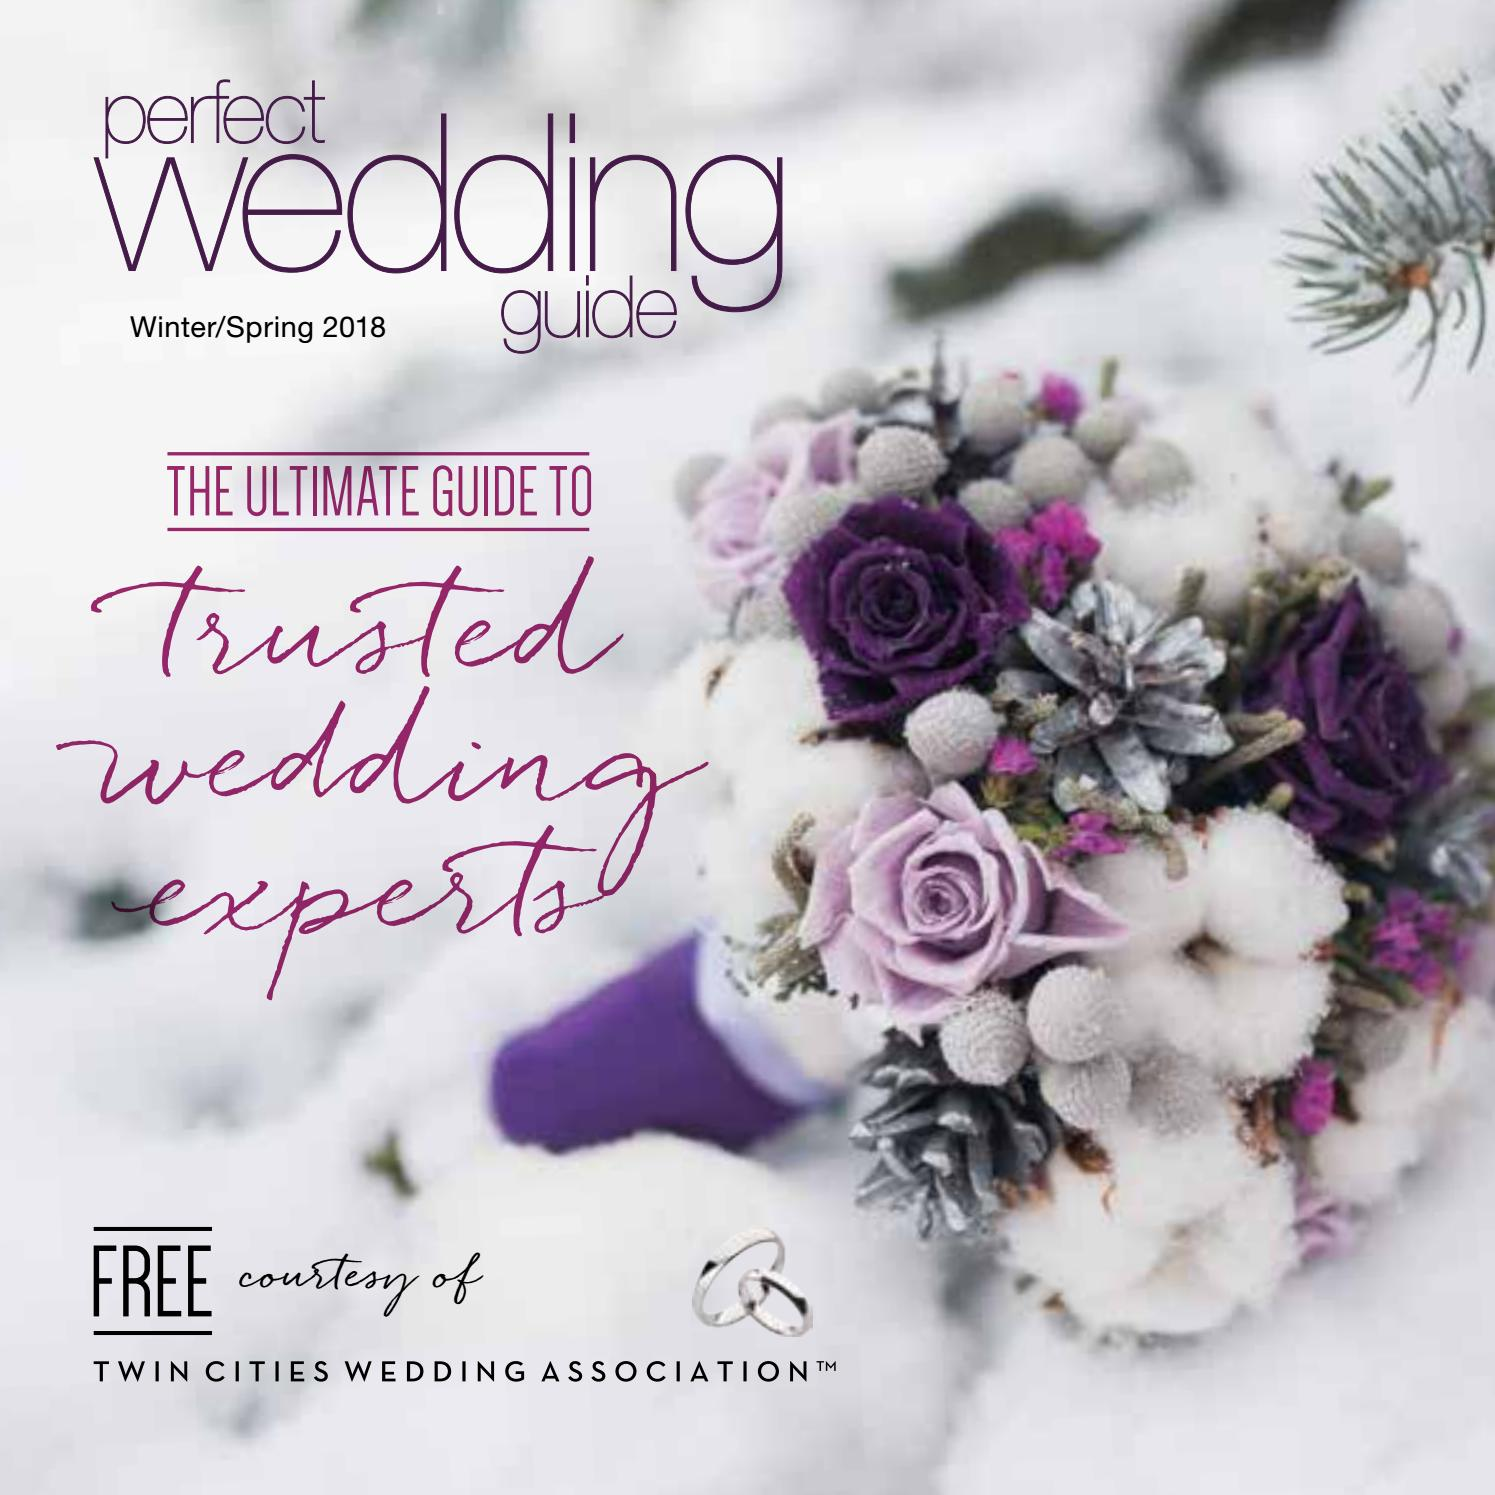 Perfect Wedding Guide Twin Cities Winter/Spring 2018